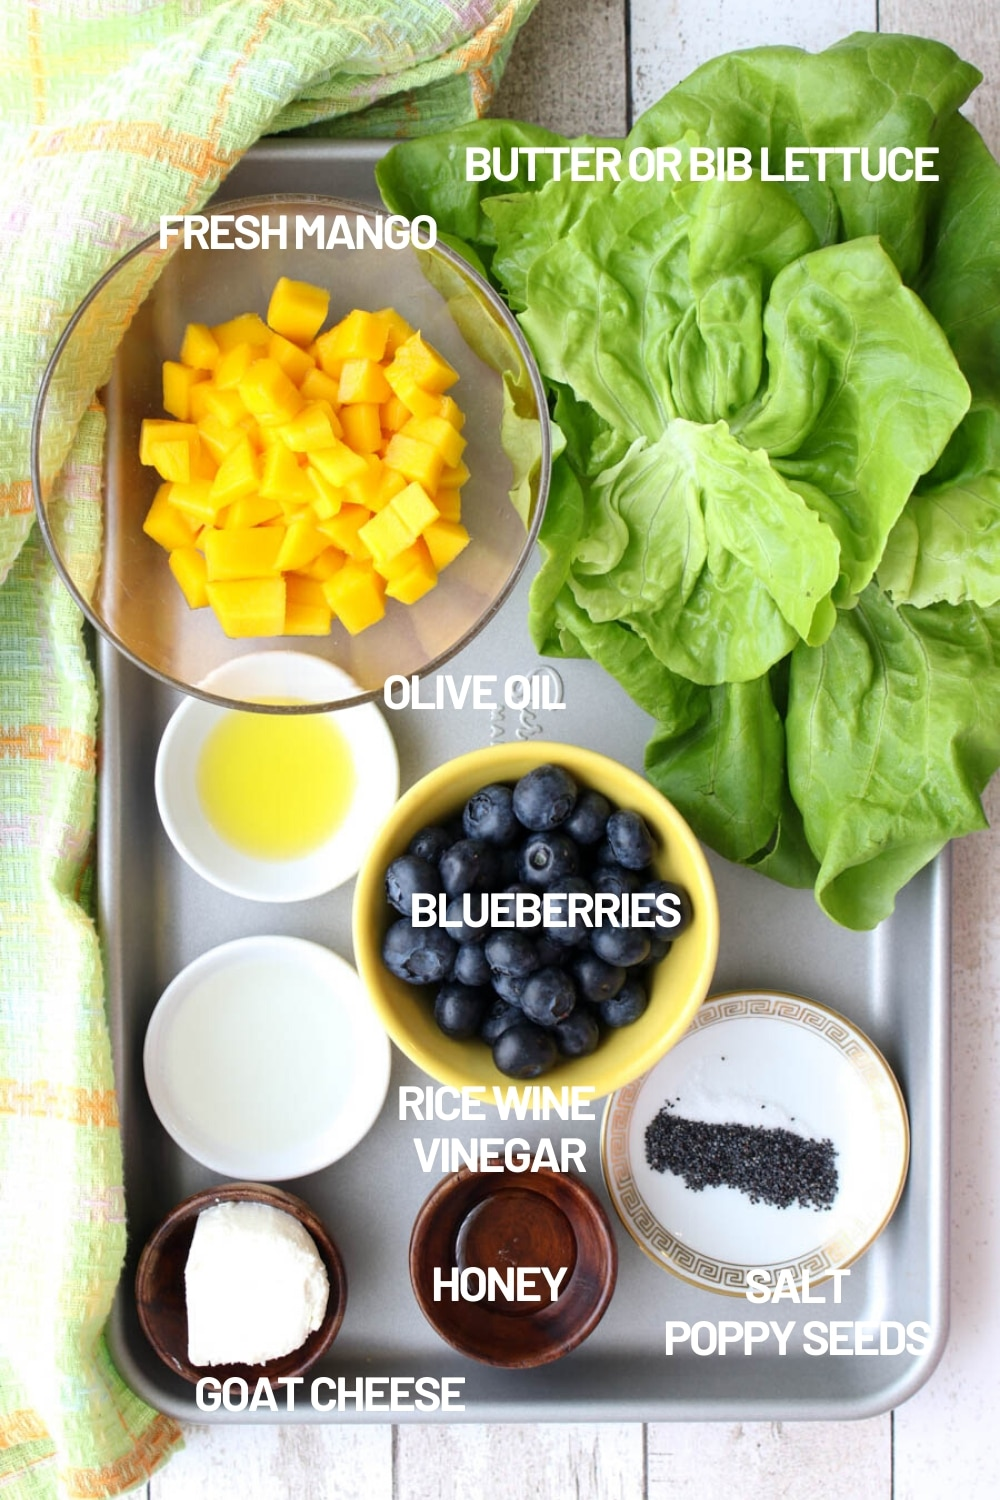 Tray with the ingredients for making mango blueberry salad